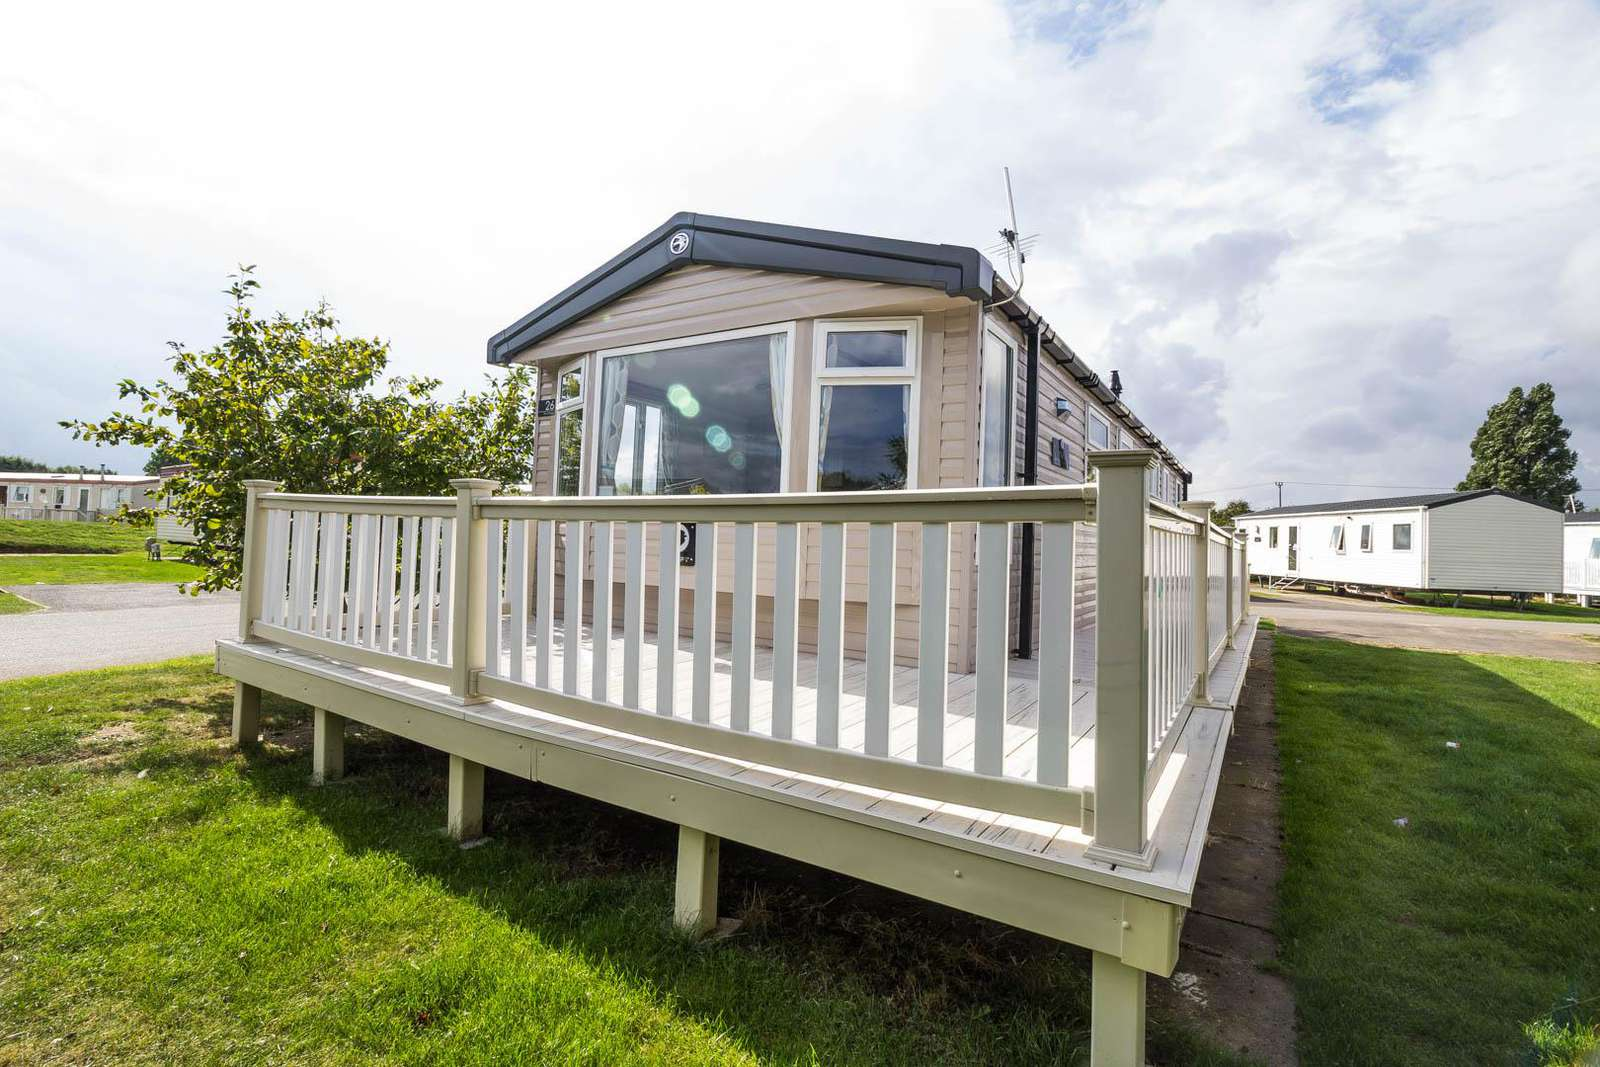 33026V – Vintage area, 3 bed, 8 berth caravan with decking. Diamond-Plus rated - property